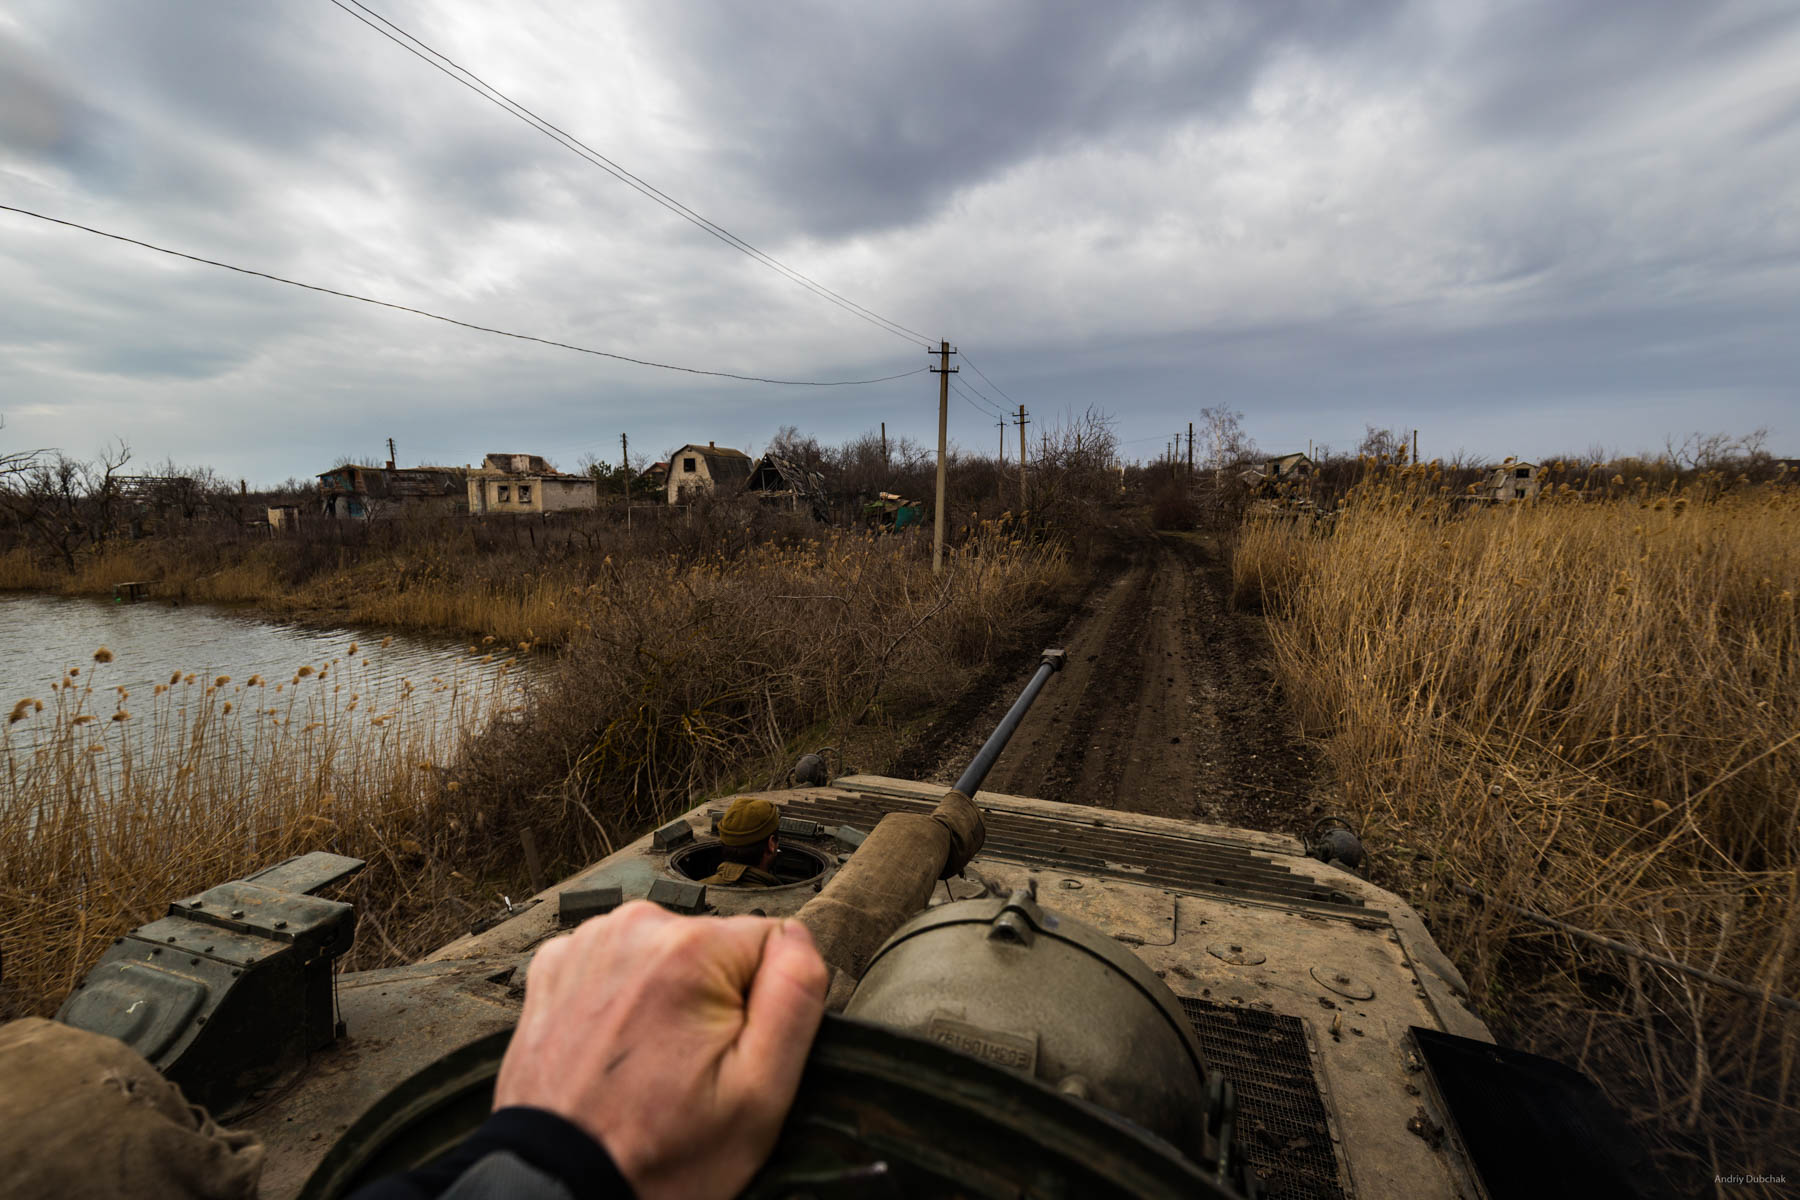 """Mounted on the armor of BMP-2 navigating Vodyane Since the beginning of the conflict, the village was mostly under the control of militants of Russian hybrid forces, although, according to the Minsk agreements, Vodyane ought to be controlled by Ukrainian side. Only in early 2017, militants were completely expelled. All valuables were looted then, and now most of the """"insides"""" of buildings are just heaps of burnt debris. The village was often hit by artillery of various calibers and """"Hradamy""""(missile artillery). Even now, sometimes, somewhere """"Stodvadtsyatka"""" (120-millimeter mine) can arrive. Most of the front positions of the marines are located a few hundred meters away from the village. All needed is brought down - firewood, water, food, ammunition. The enemy, as a rule, can shoot through the roads here. Where possible armored vehicles deliver goods, where not - everything has to be brought by hand. Video: https://goo.gl/naFV2E"""